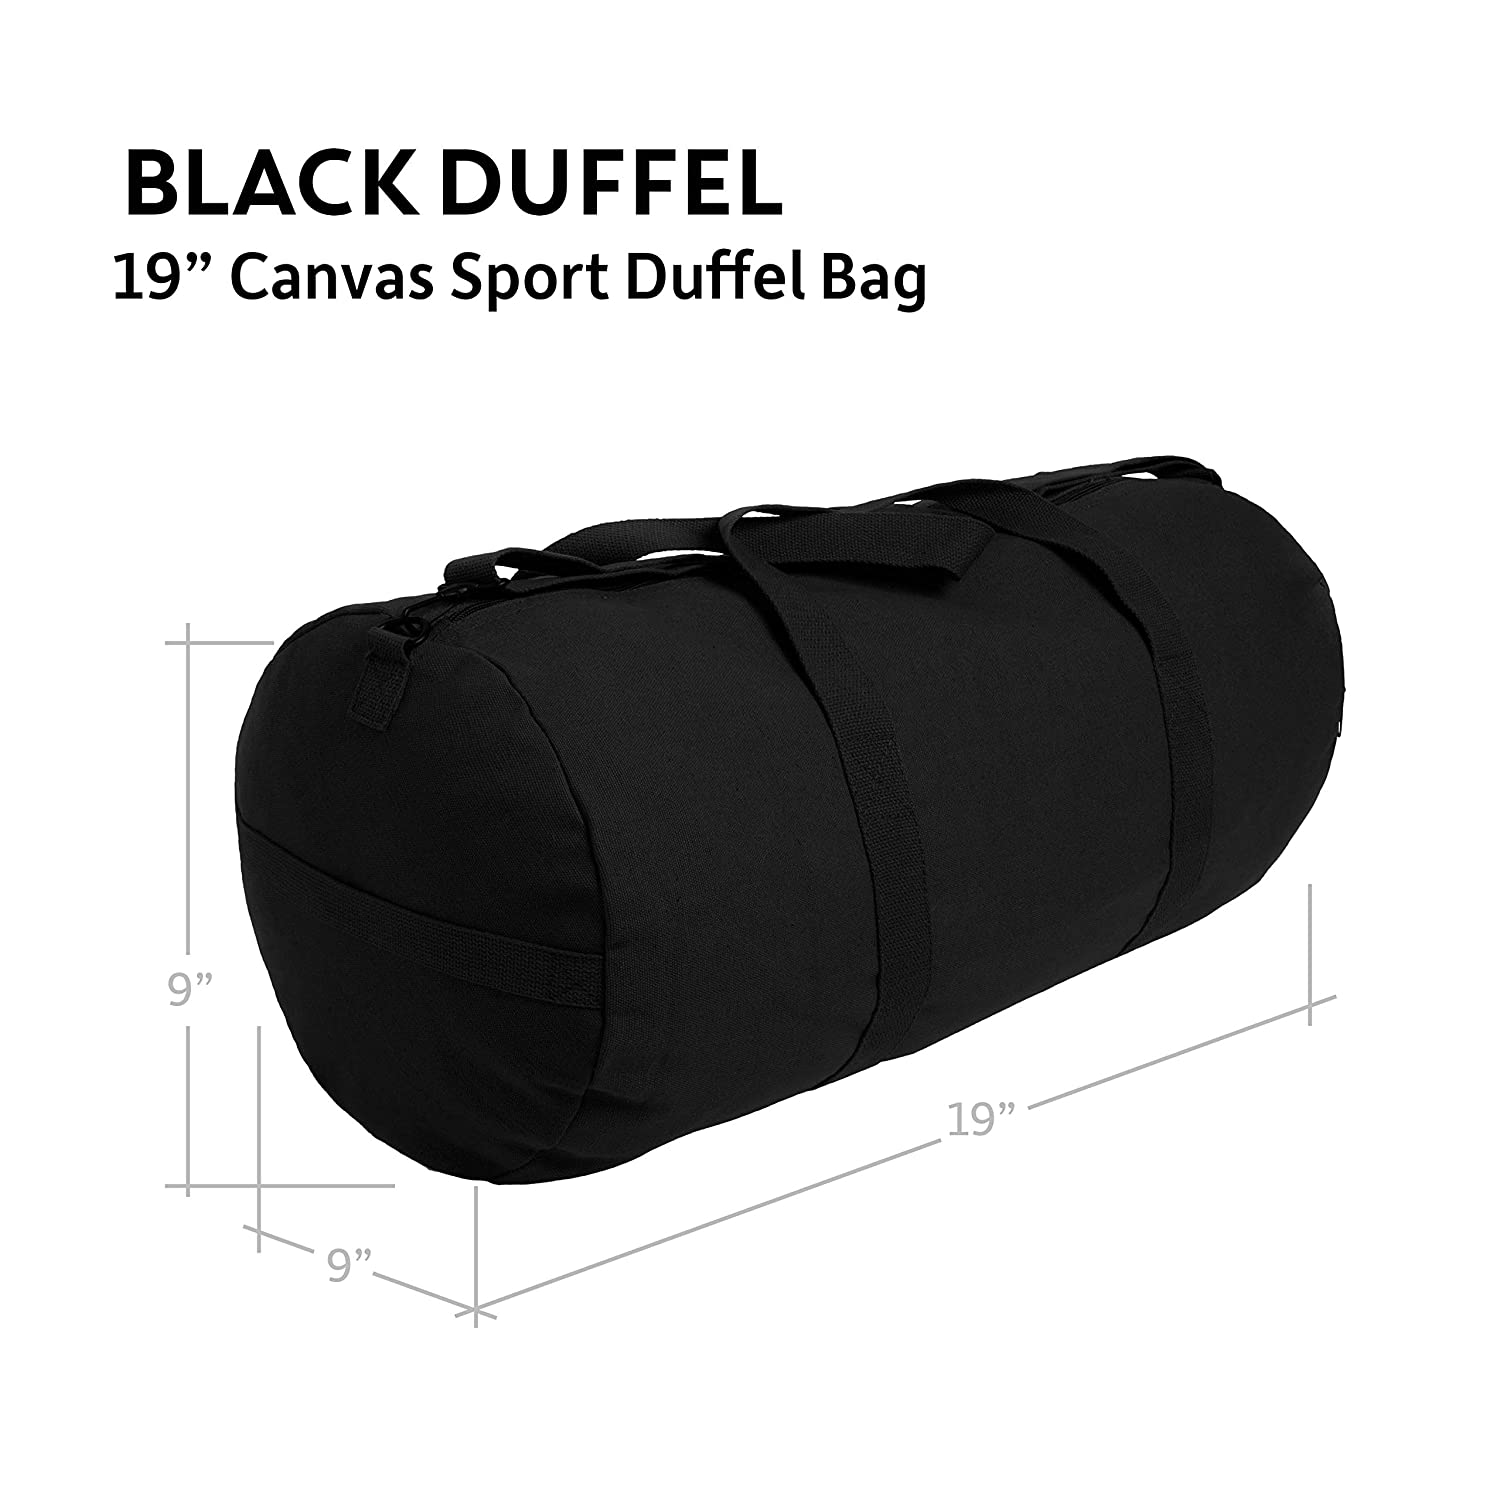 Jeep An American Tredition Army Sport Heavyweight Canvas Duffel Bag in Black White, Large